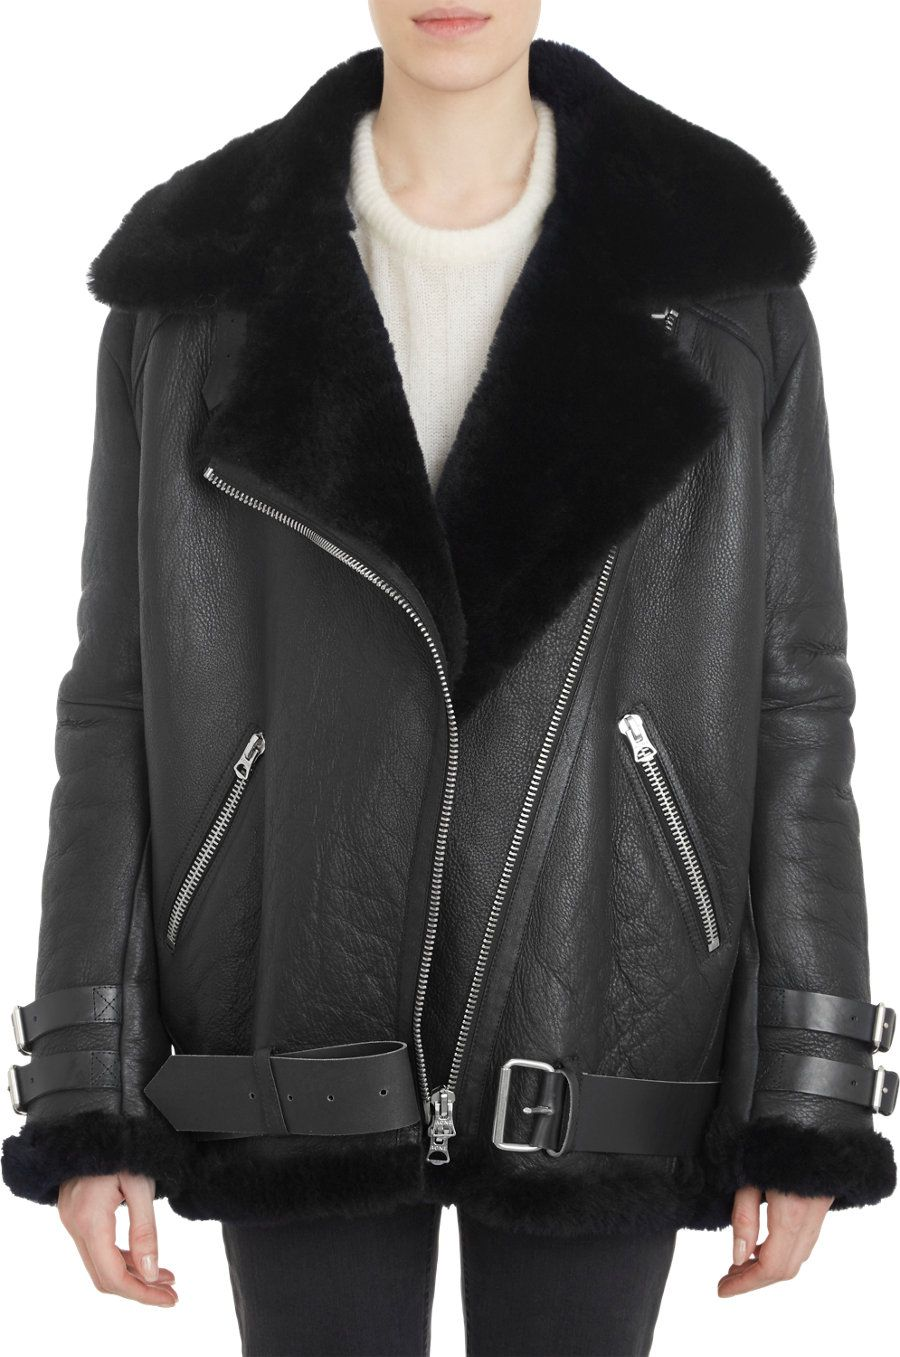 acne shearling leather jacket - Google Search | garments ...